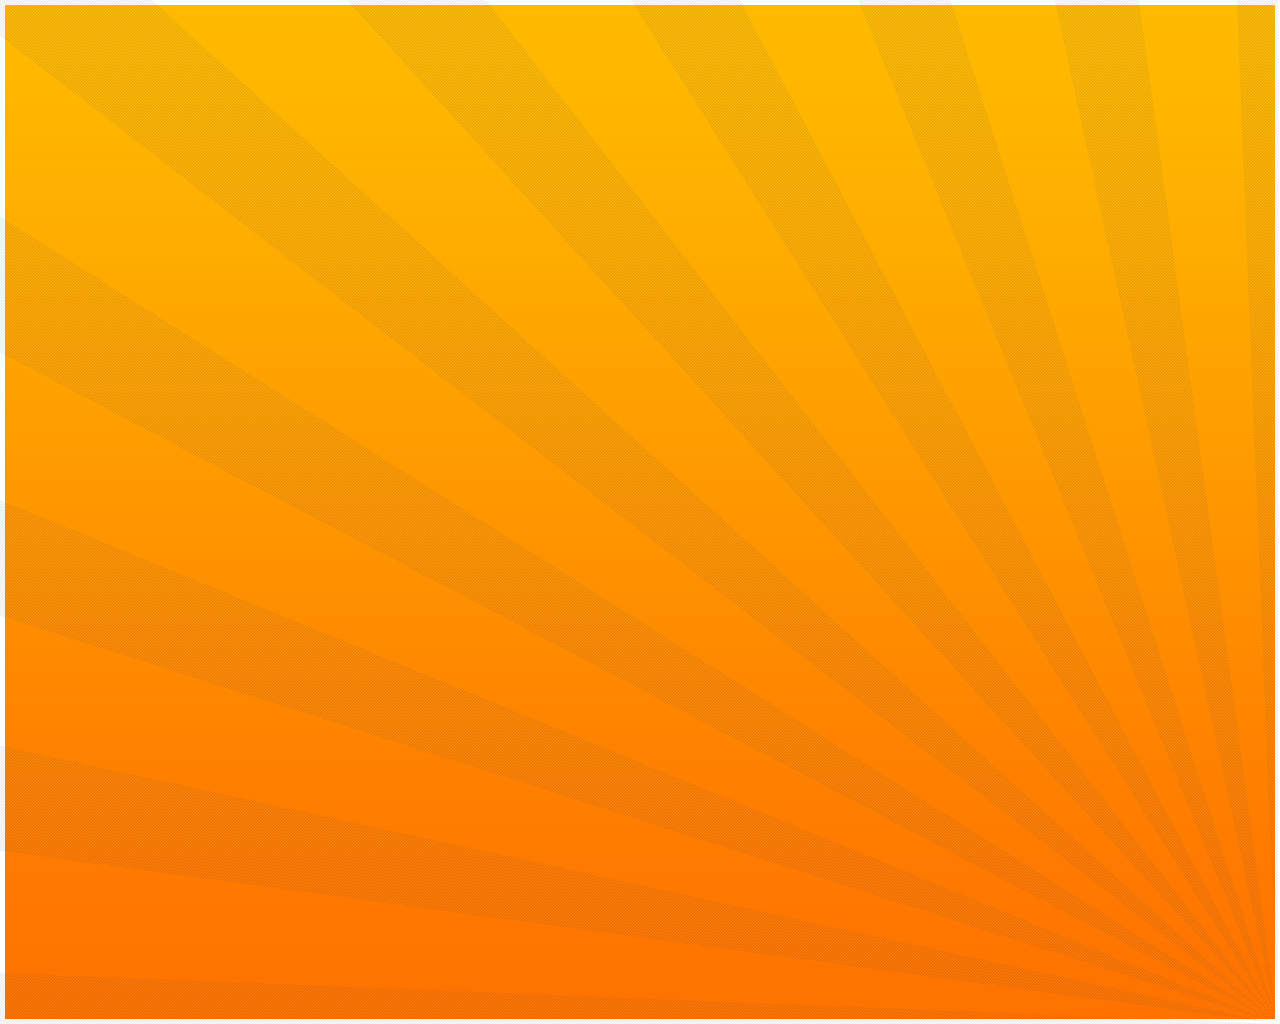 orange image background